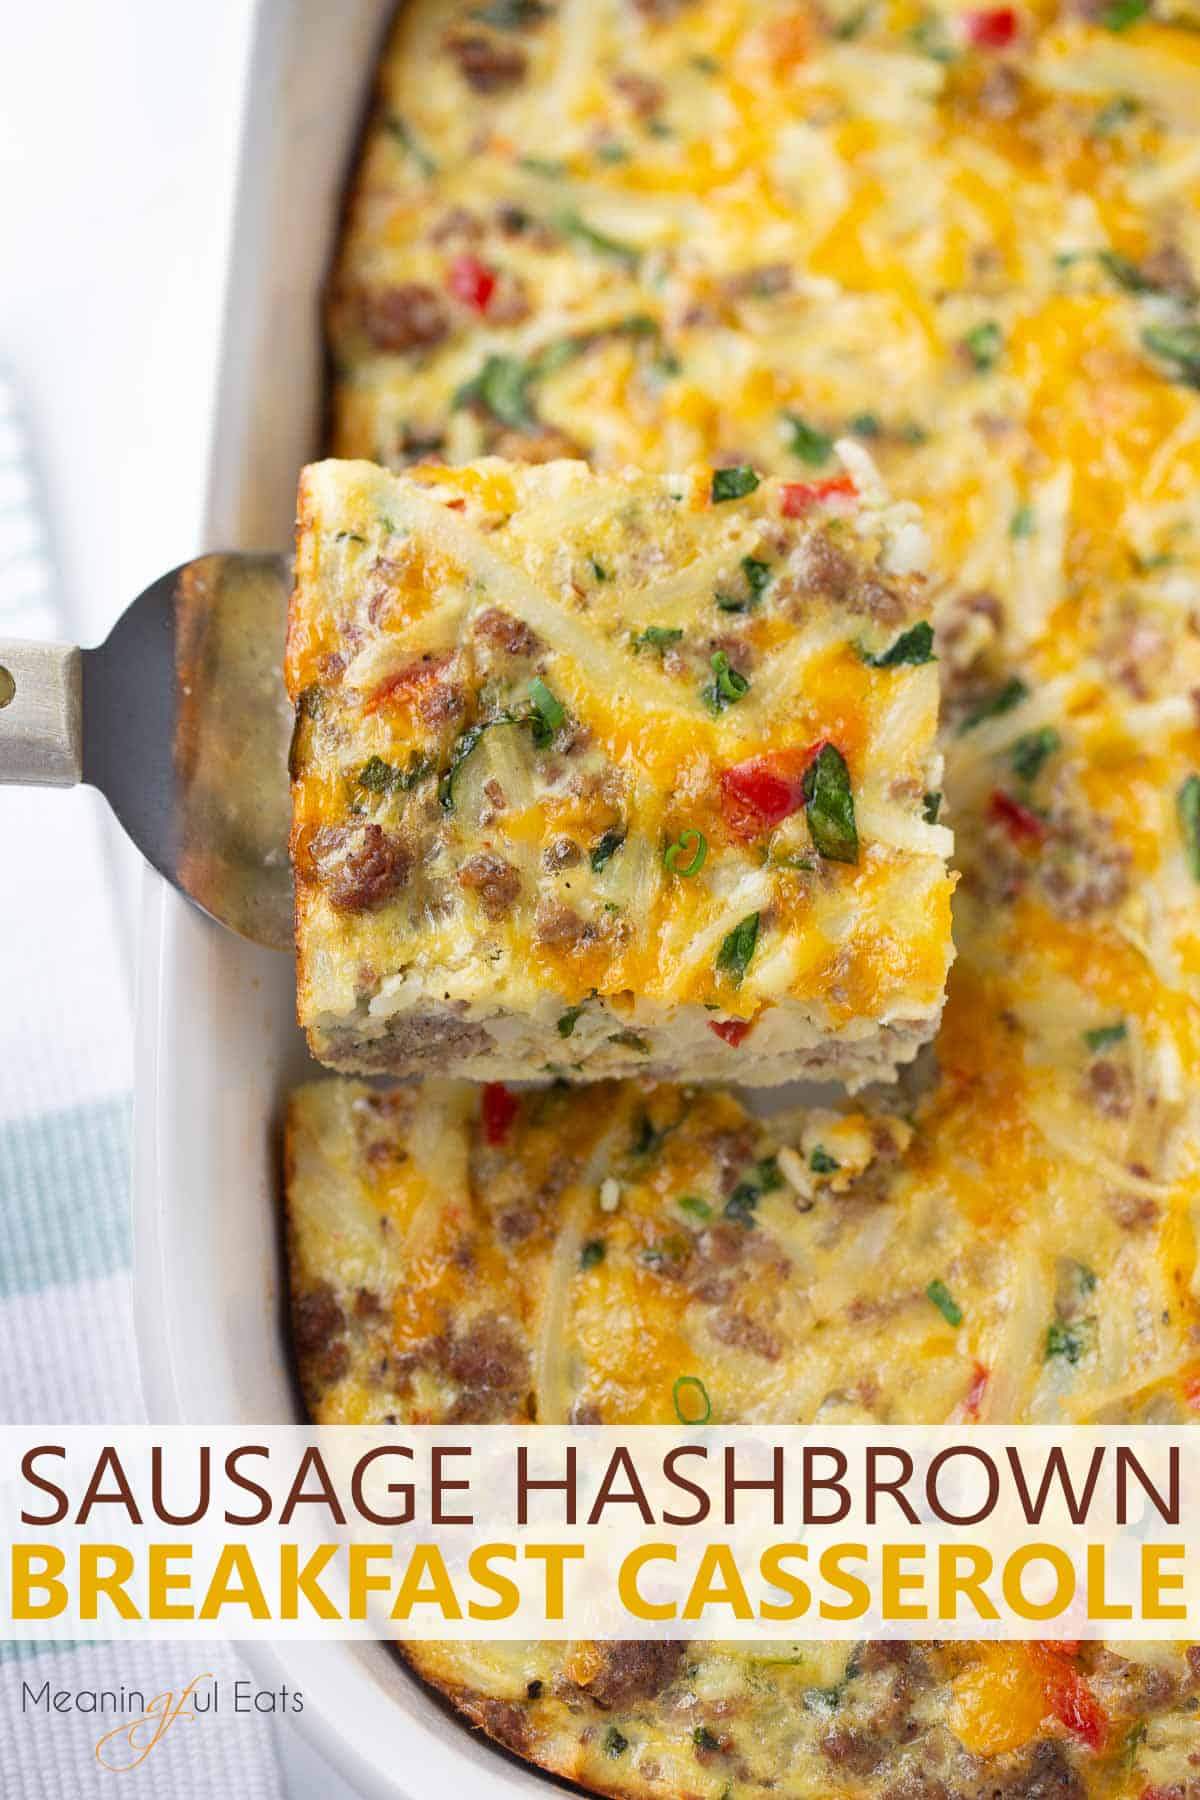 image for pinterest - breakfast casserole being served from white casserole dish with spatula